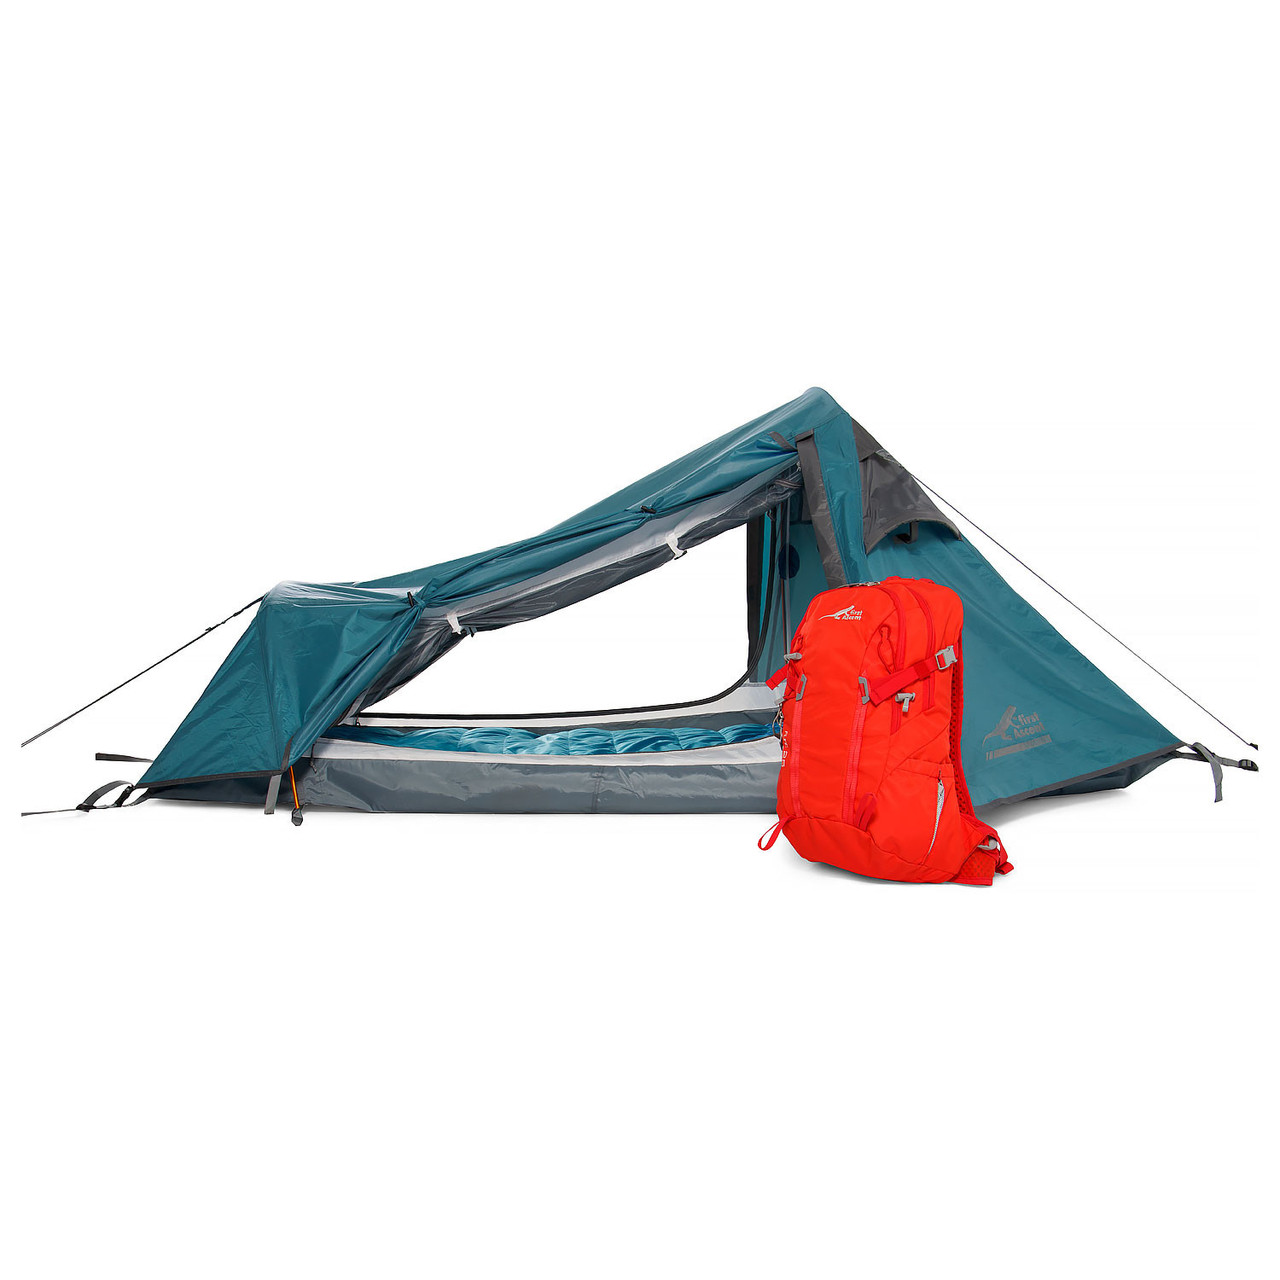 First Ascent Stamina - 1 Person Tent - Opened Doors - Online at Mountain Mail Order South Africa